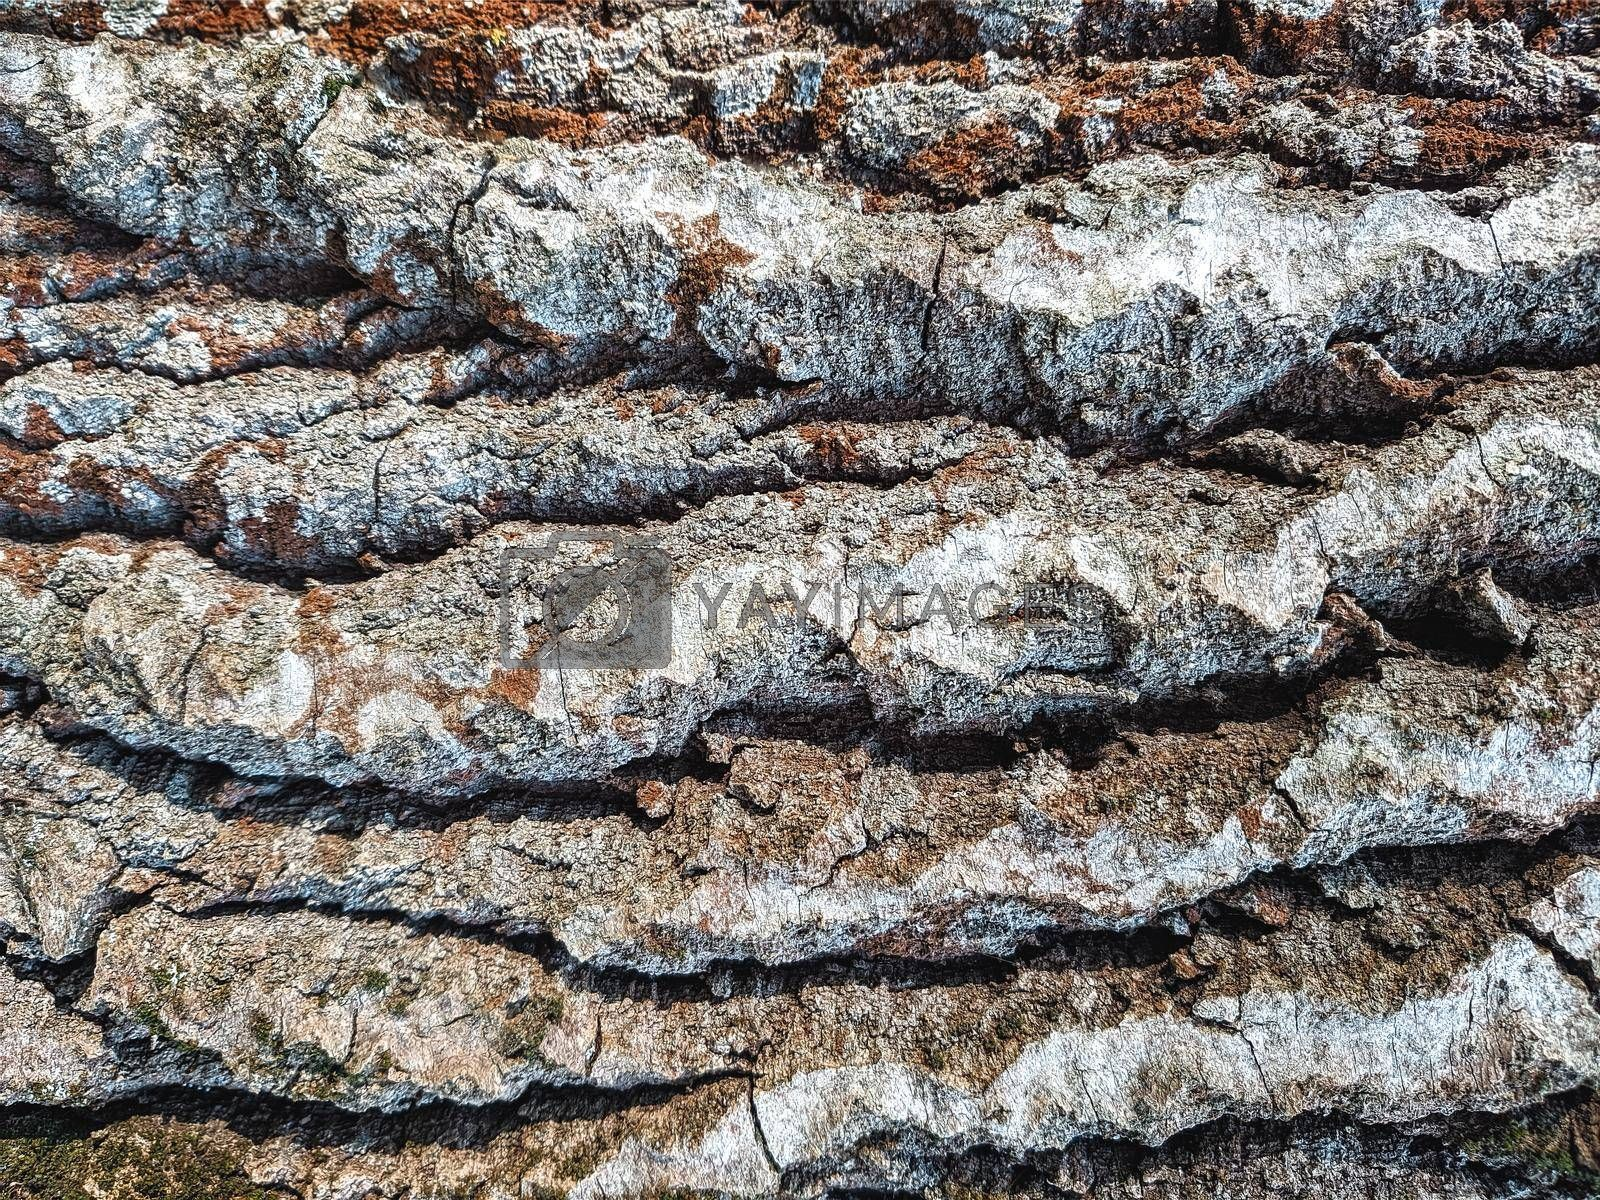 Royalty free image of Close up of old wood texture, surface tree bark by Nickstock